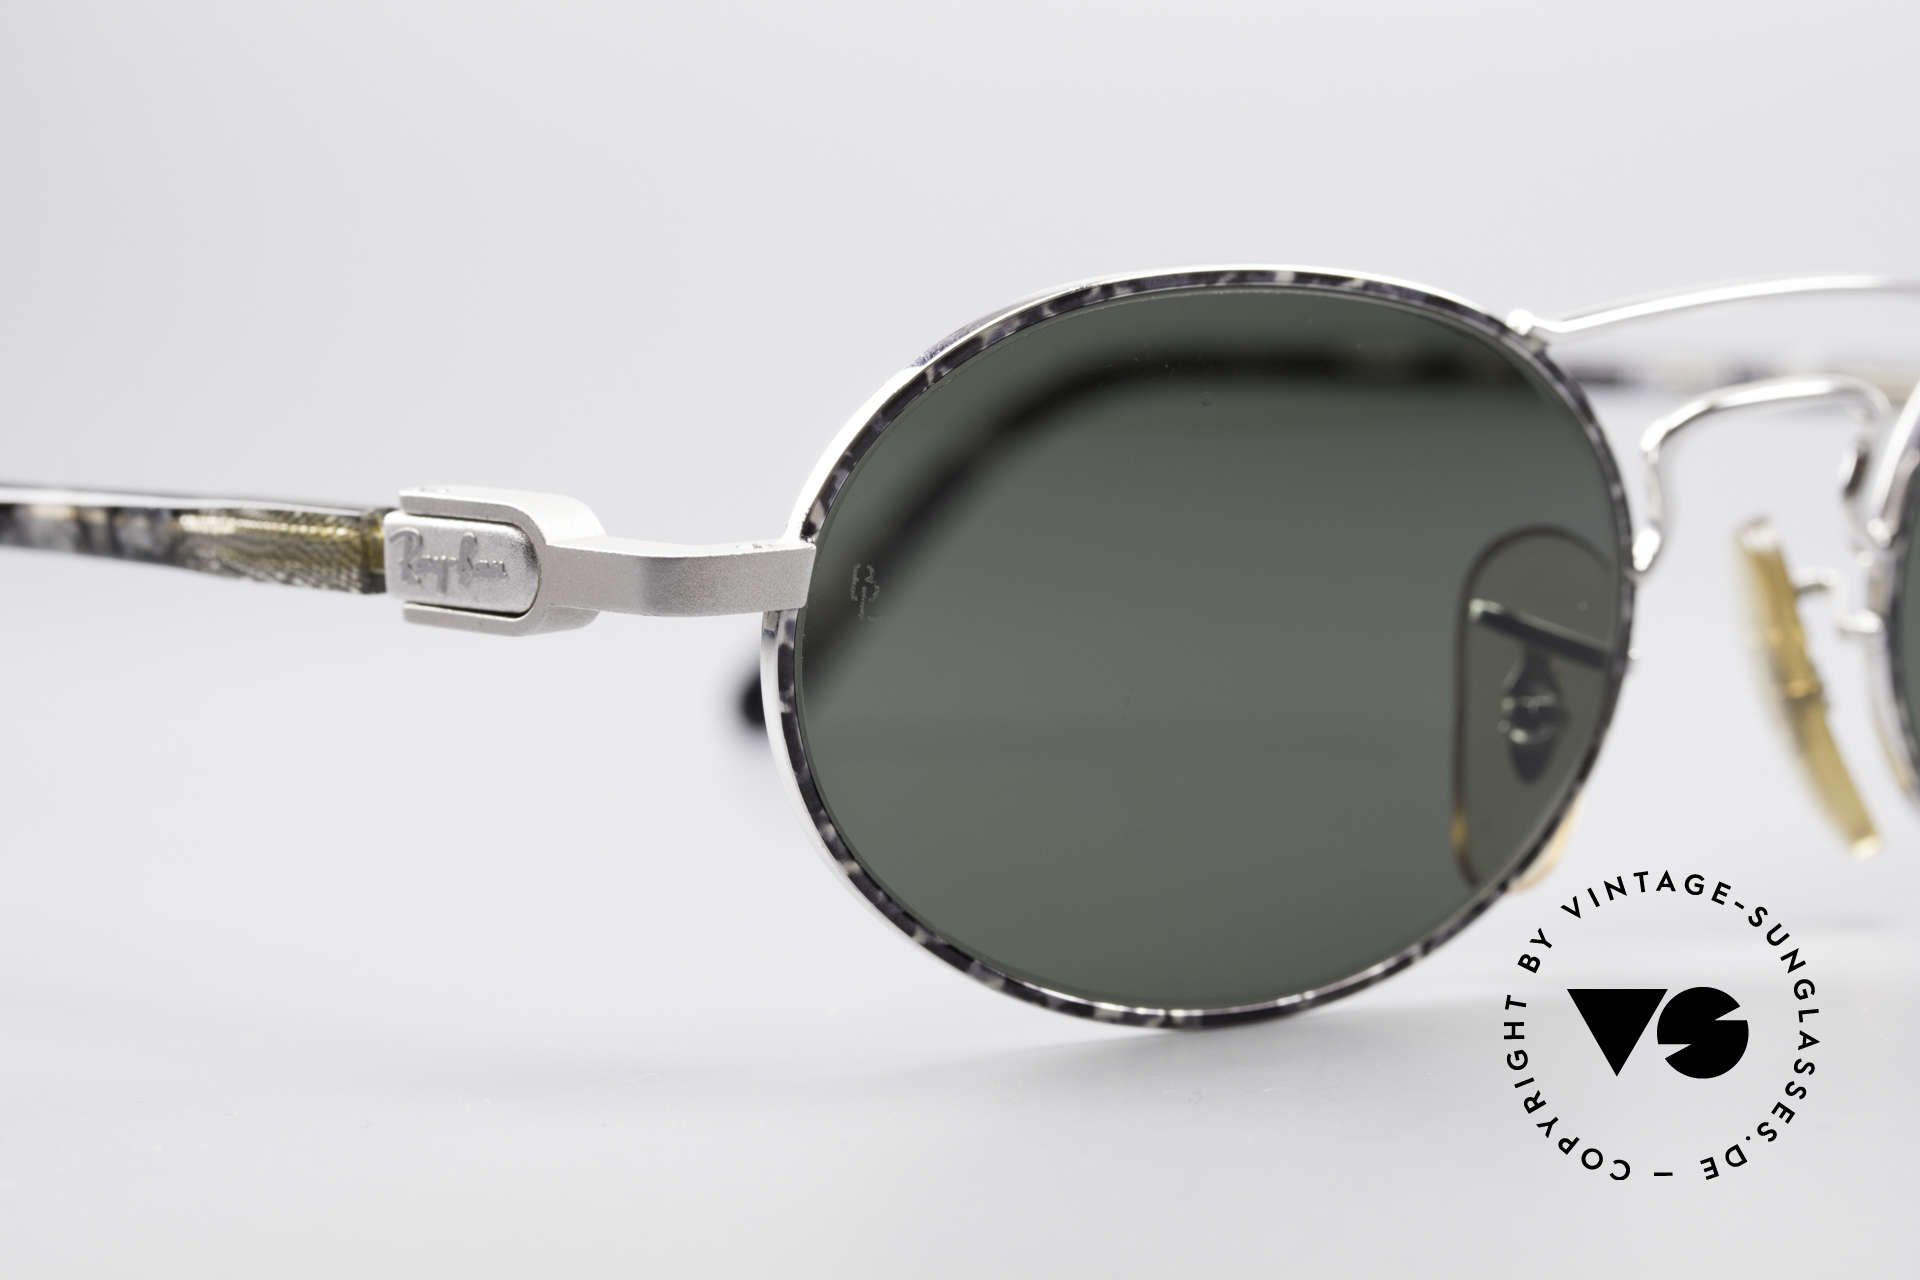 Ray Ban Chaos Oval 90's B&L USA Shades W2009, UNWORN rarity with interesting frame color / finish, Made for Men and Women